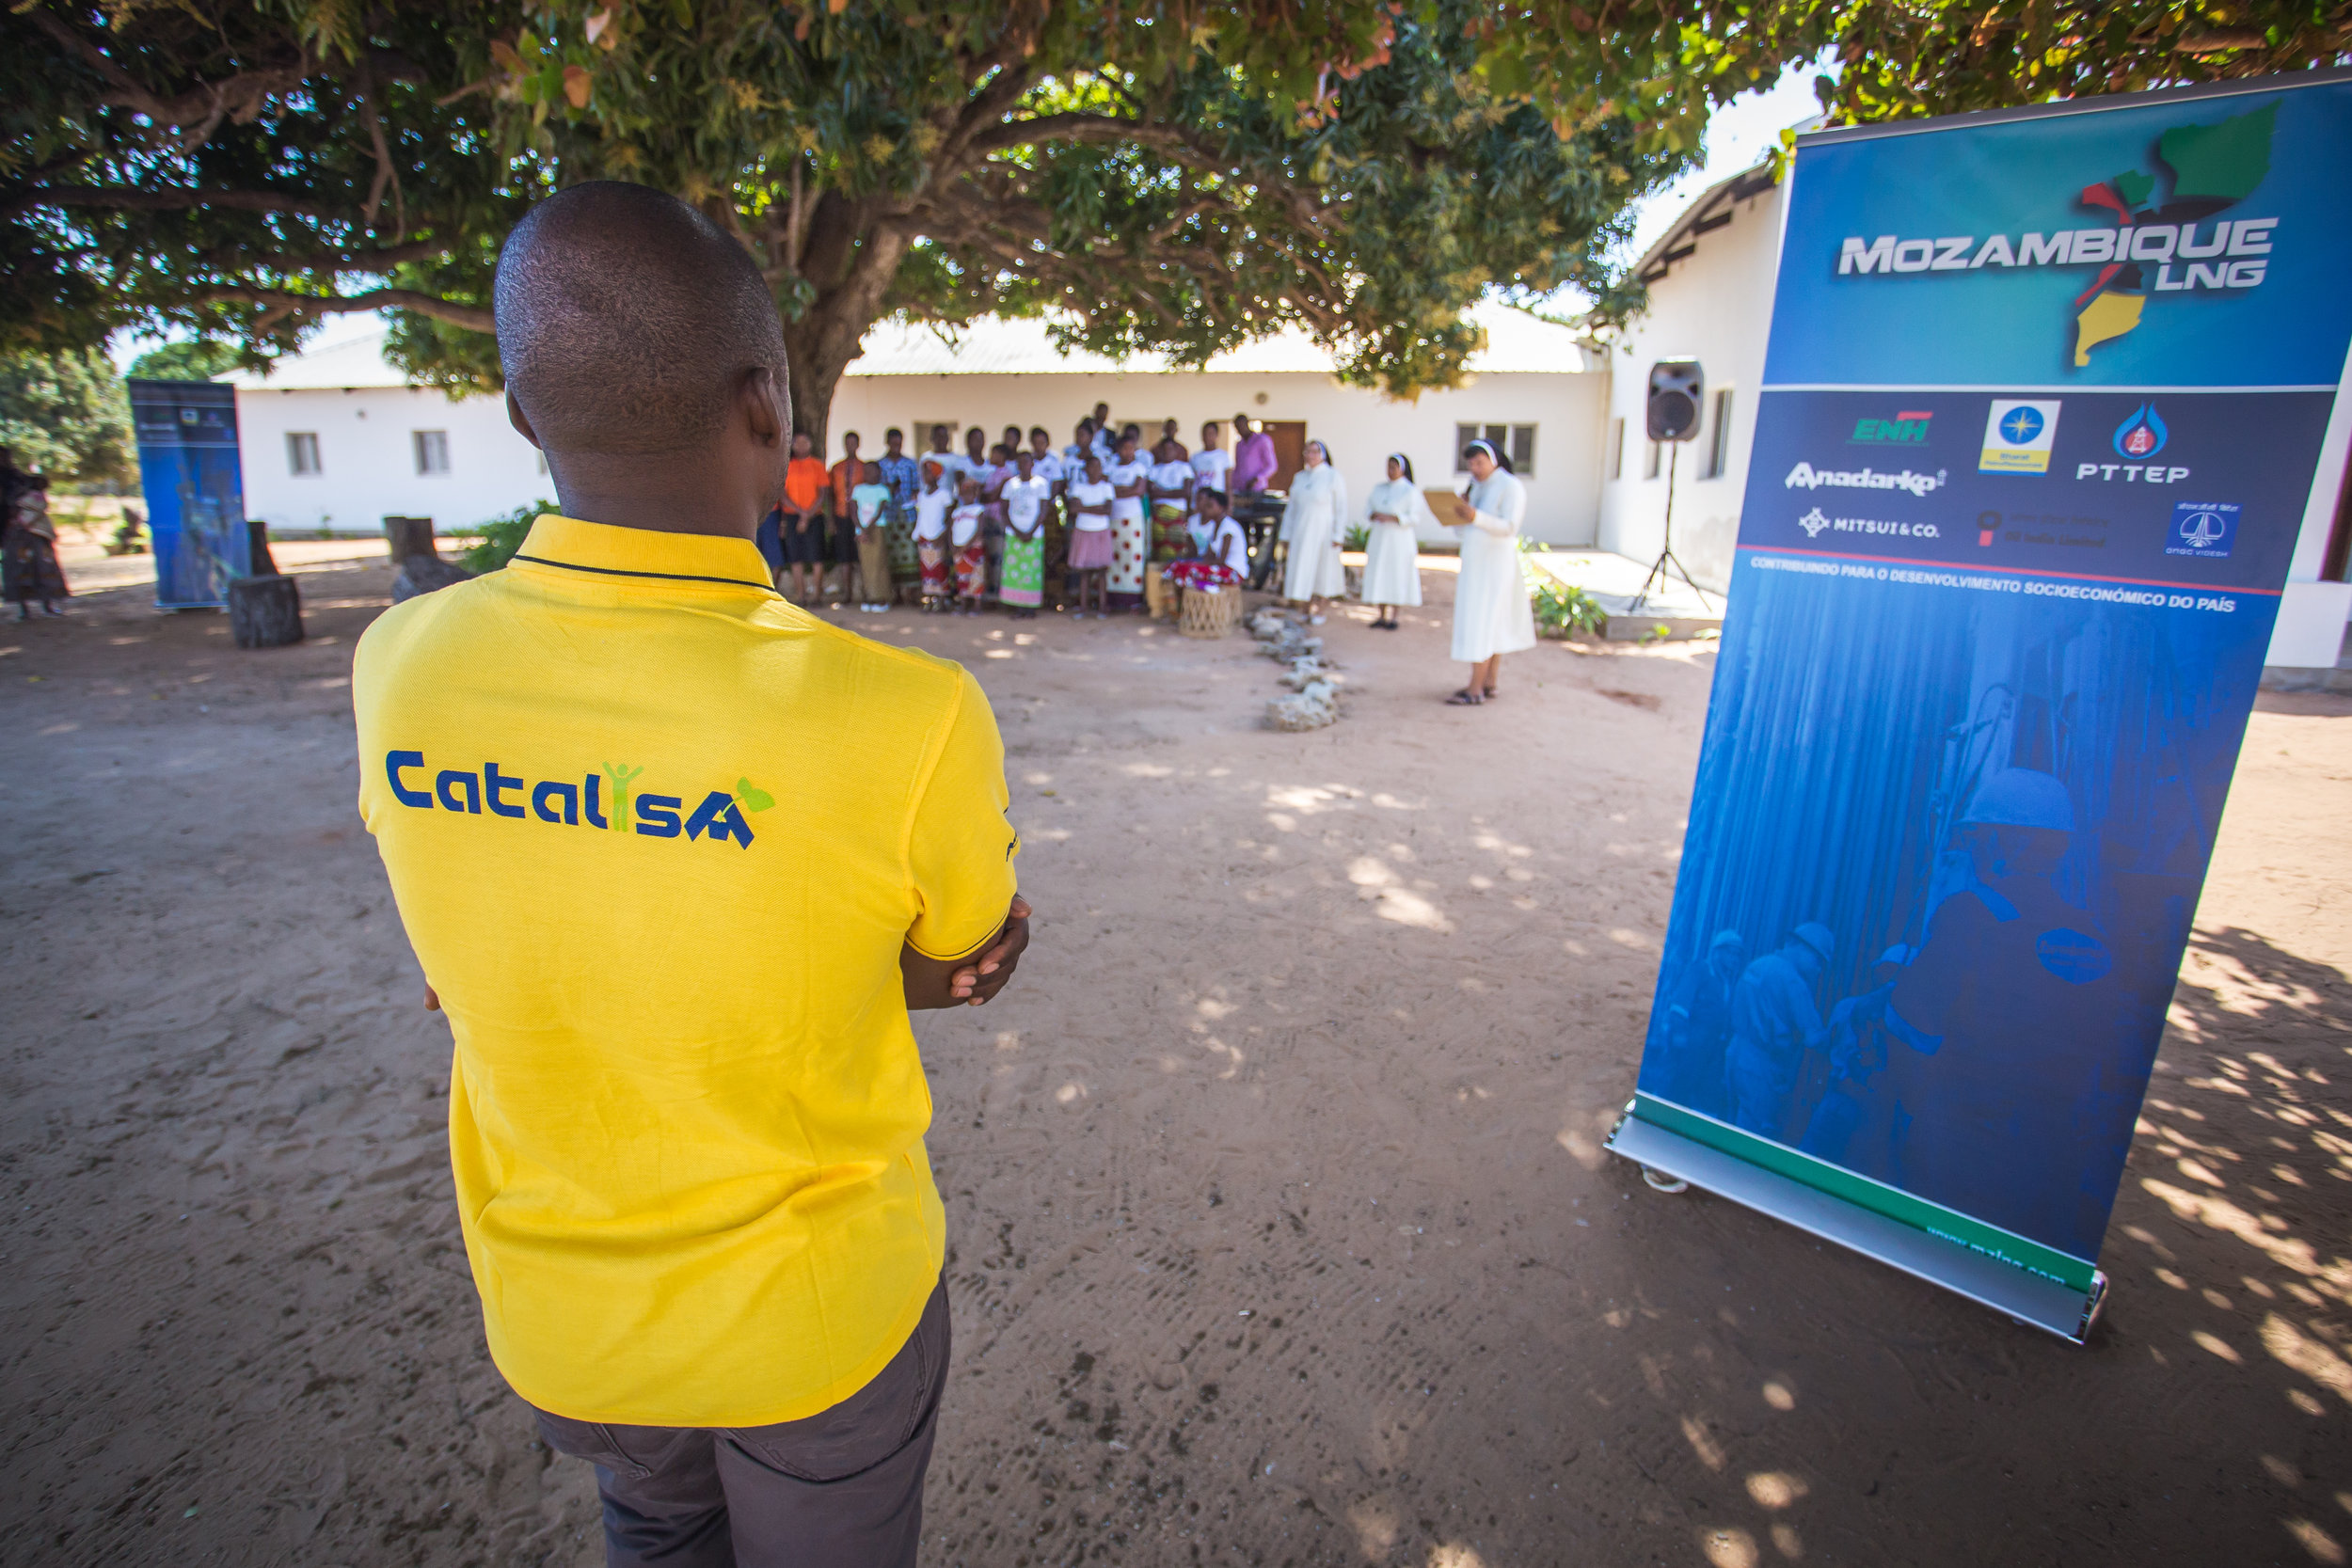 TechnoServe's Catalisa program promotes economic opportunities for youth in Cabo Delgado. In this photo, a TechnoServe trainer oversees a training session.